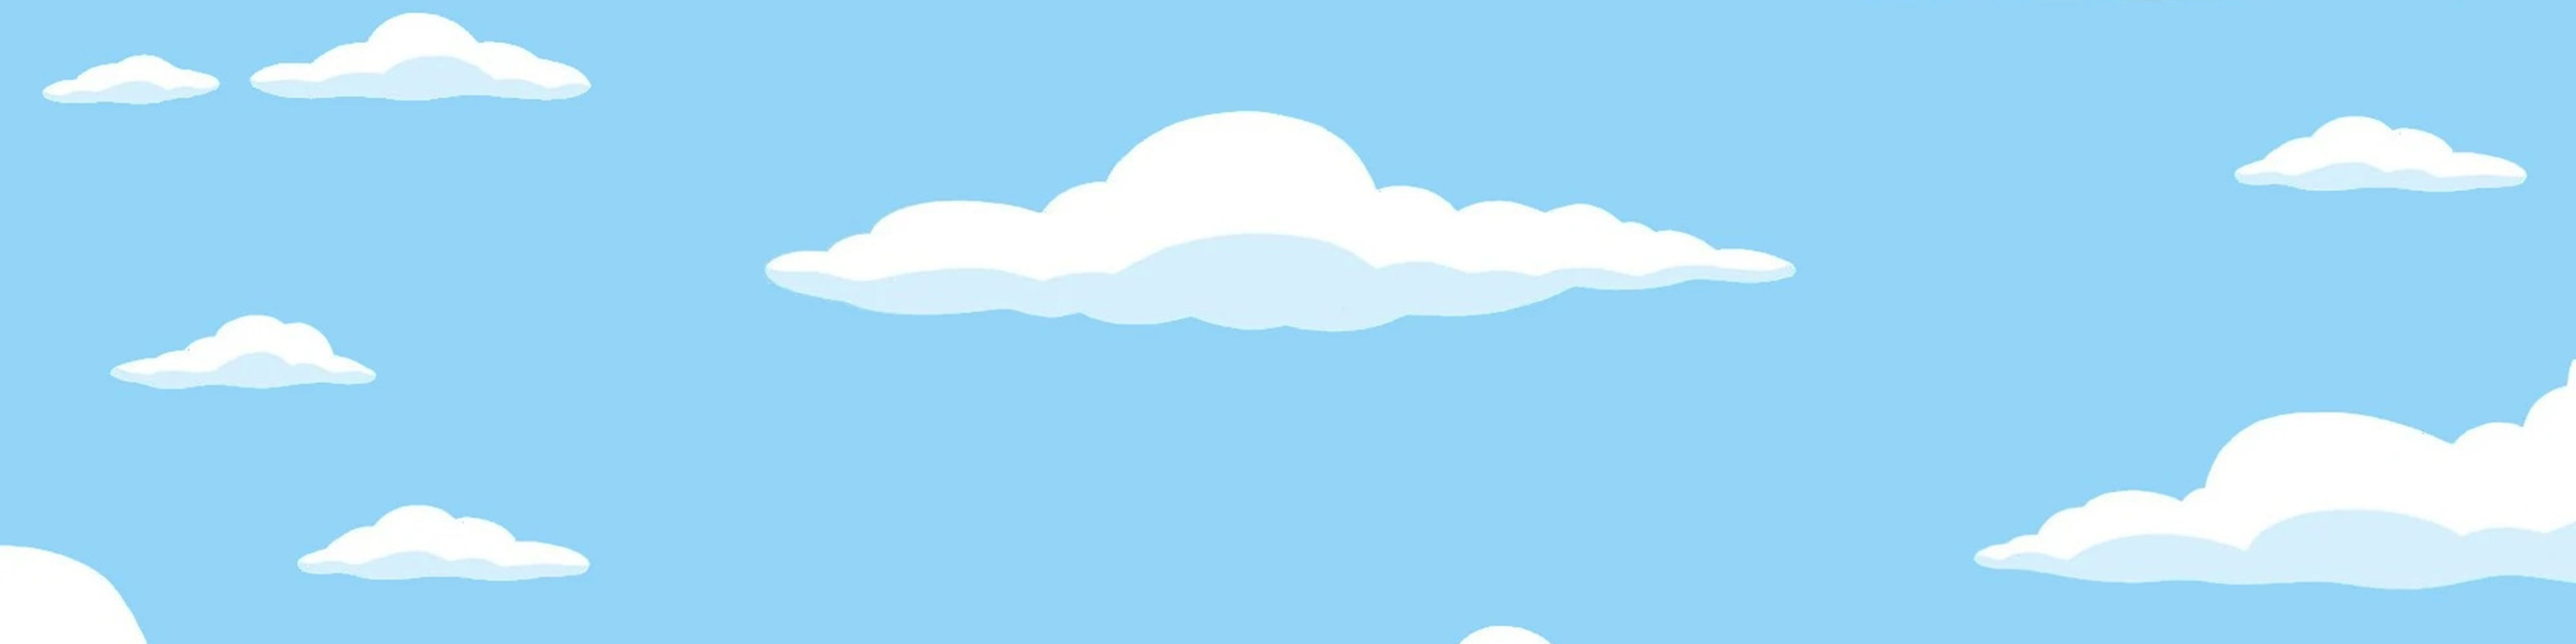 Illustration of blue sky with white clouds